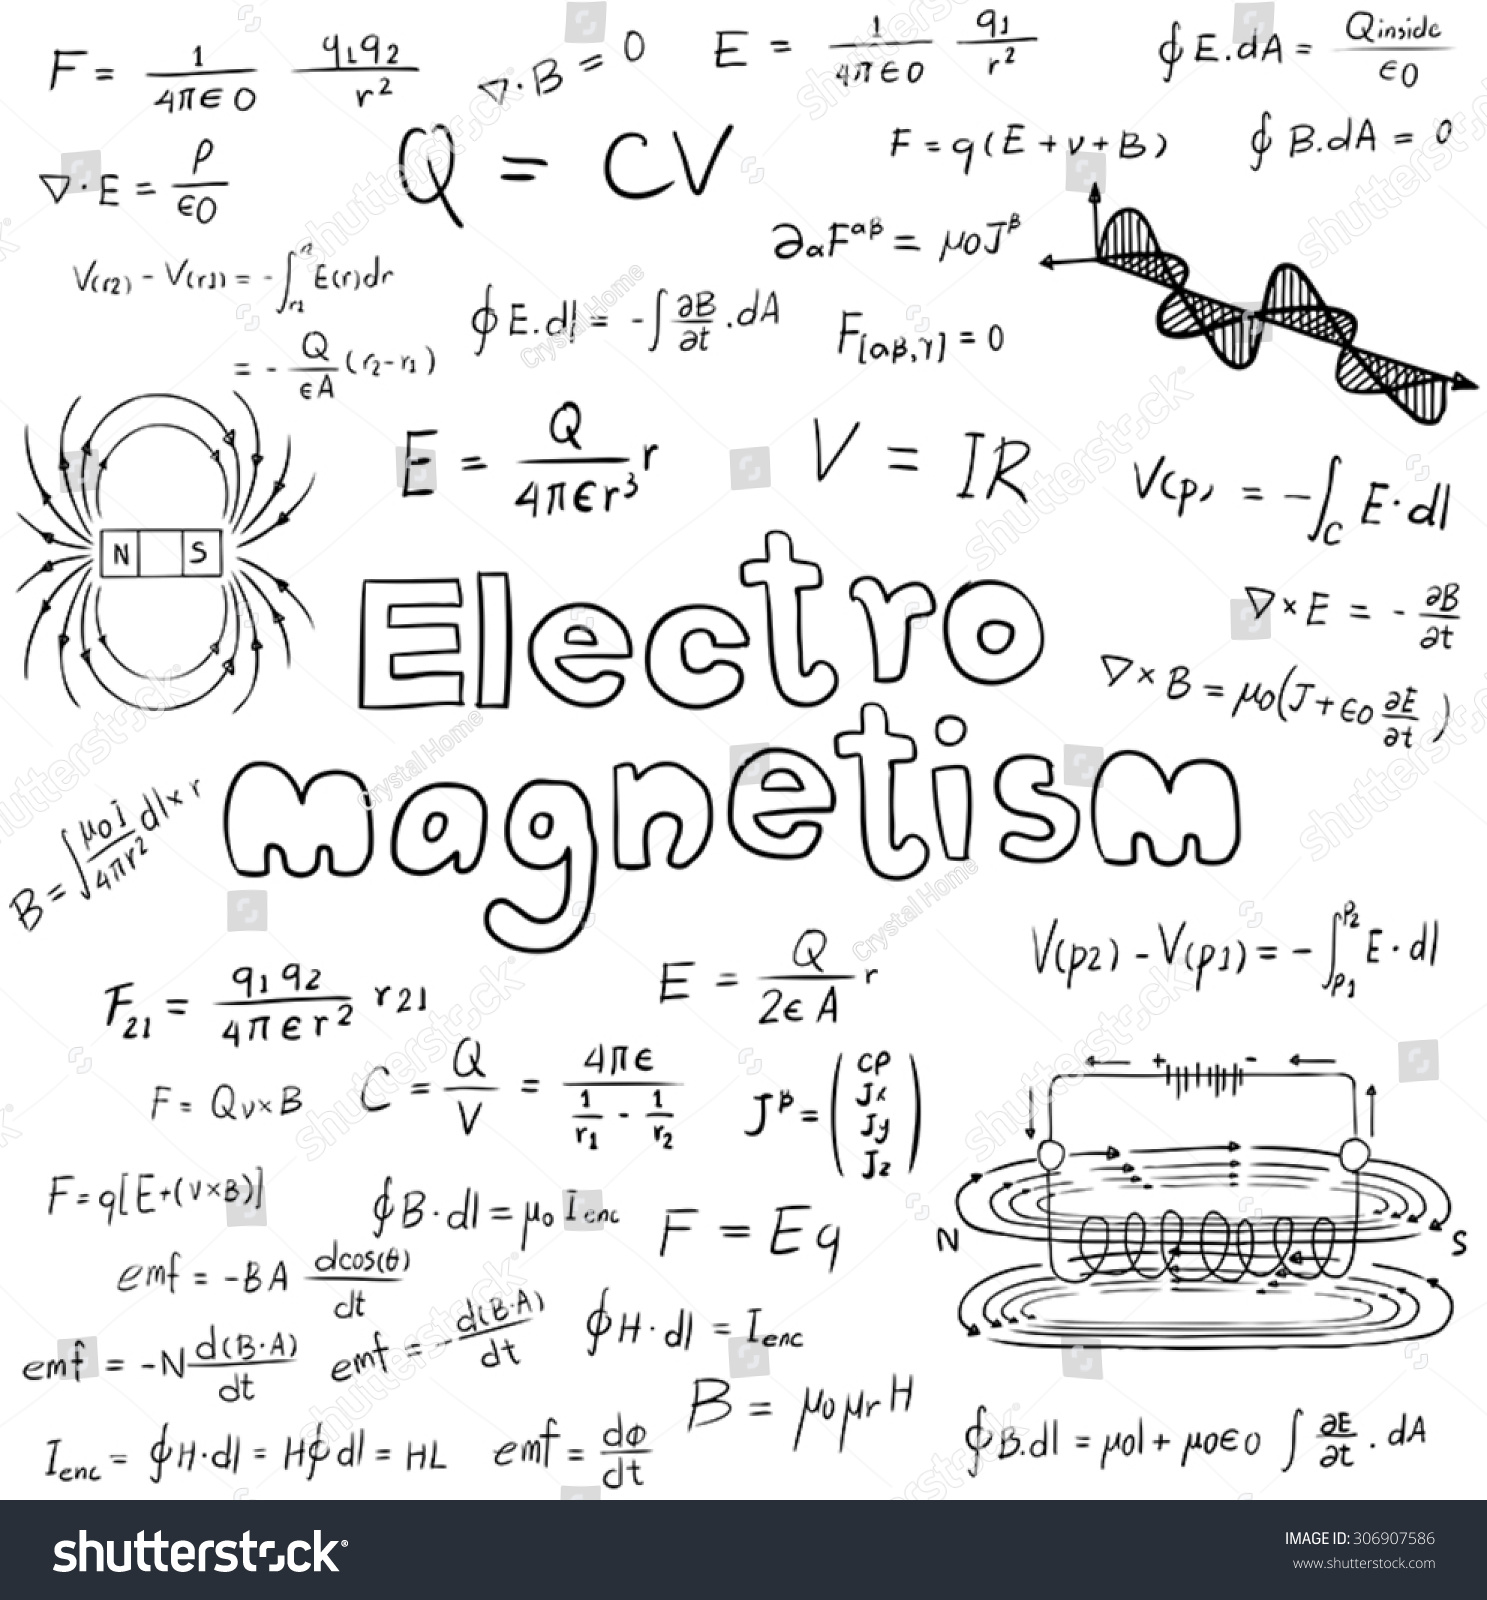 Electromanetism Electric Magnetic Law Theory Physics Stock Vector